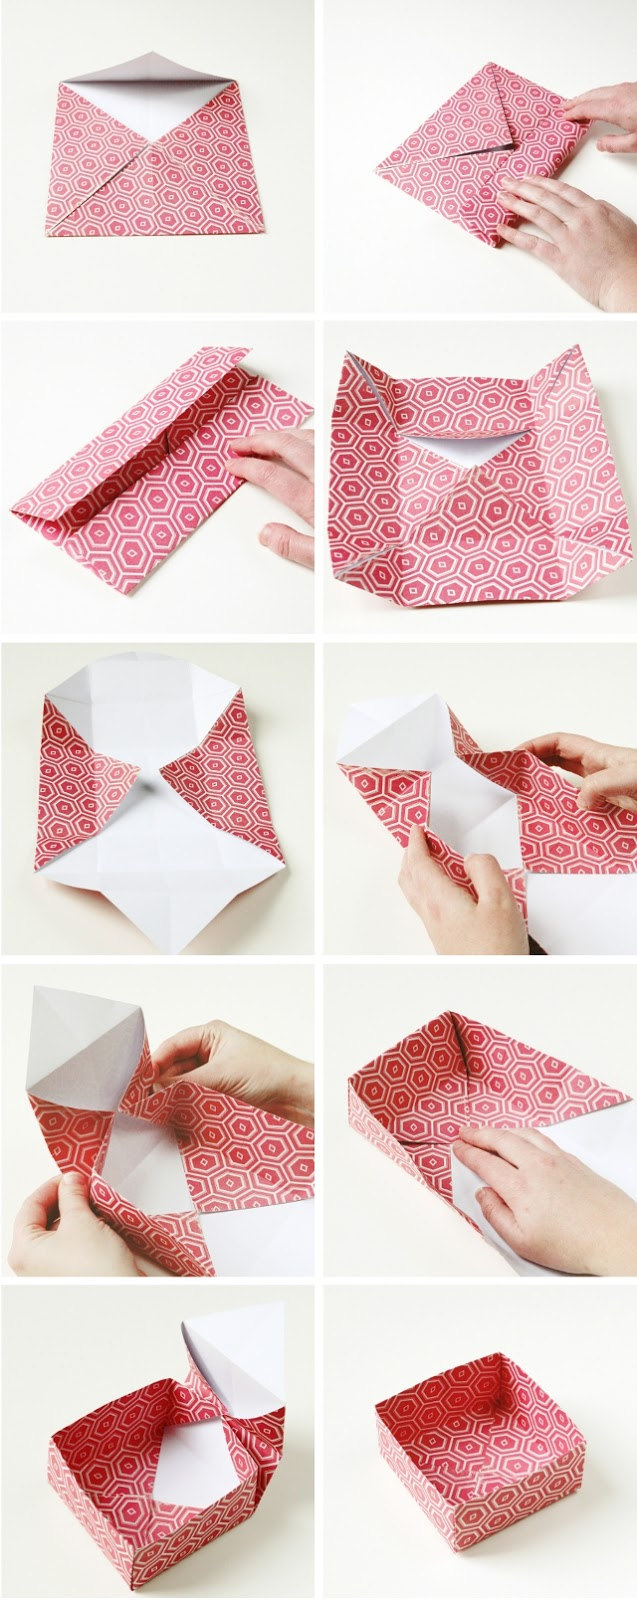 Diy origami gift boxes gathering beauty for Diy paper origami